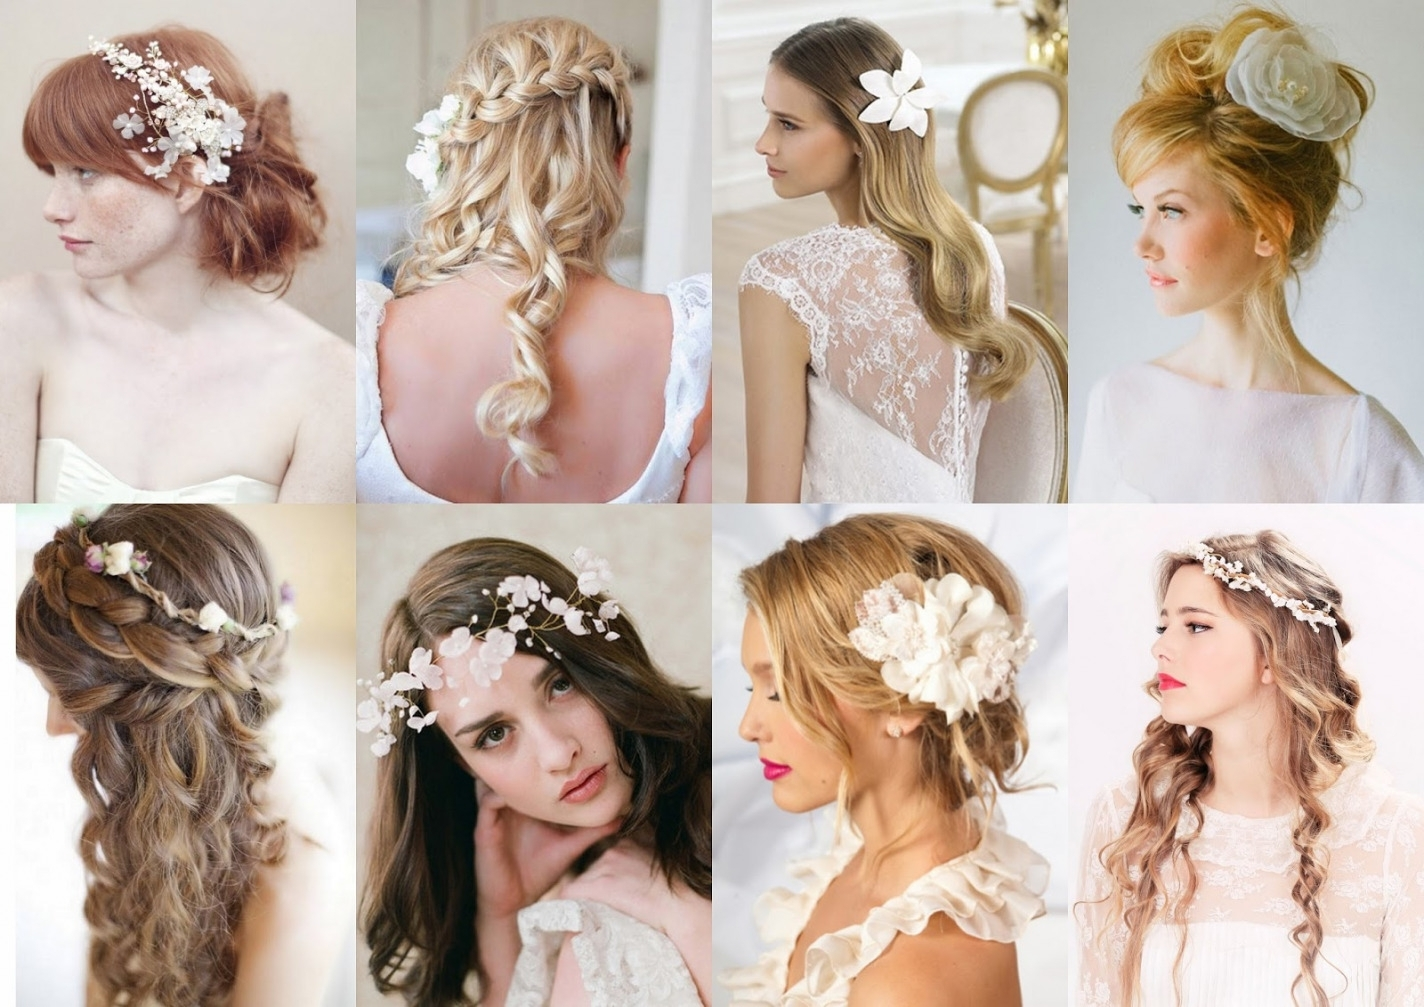 Beautiful Wedding Guest Hairstyles Fascinator (View 1 of 15)